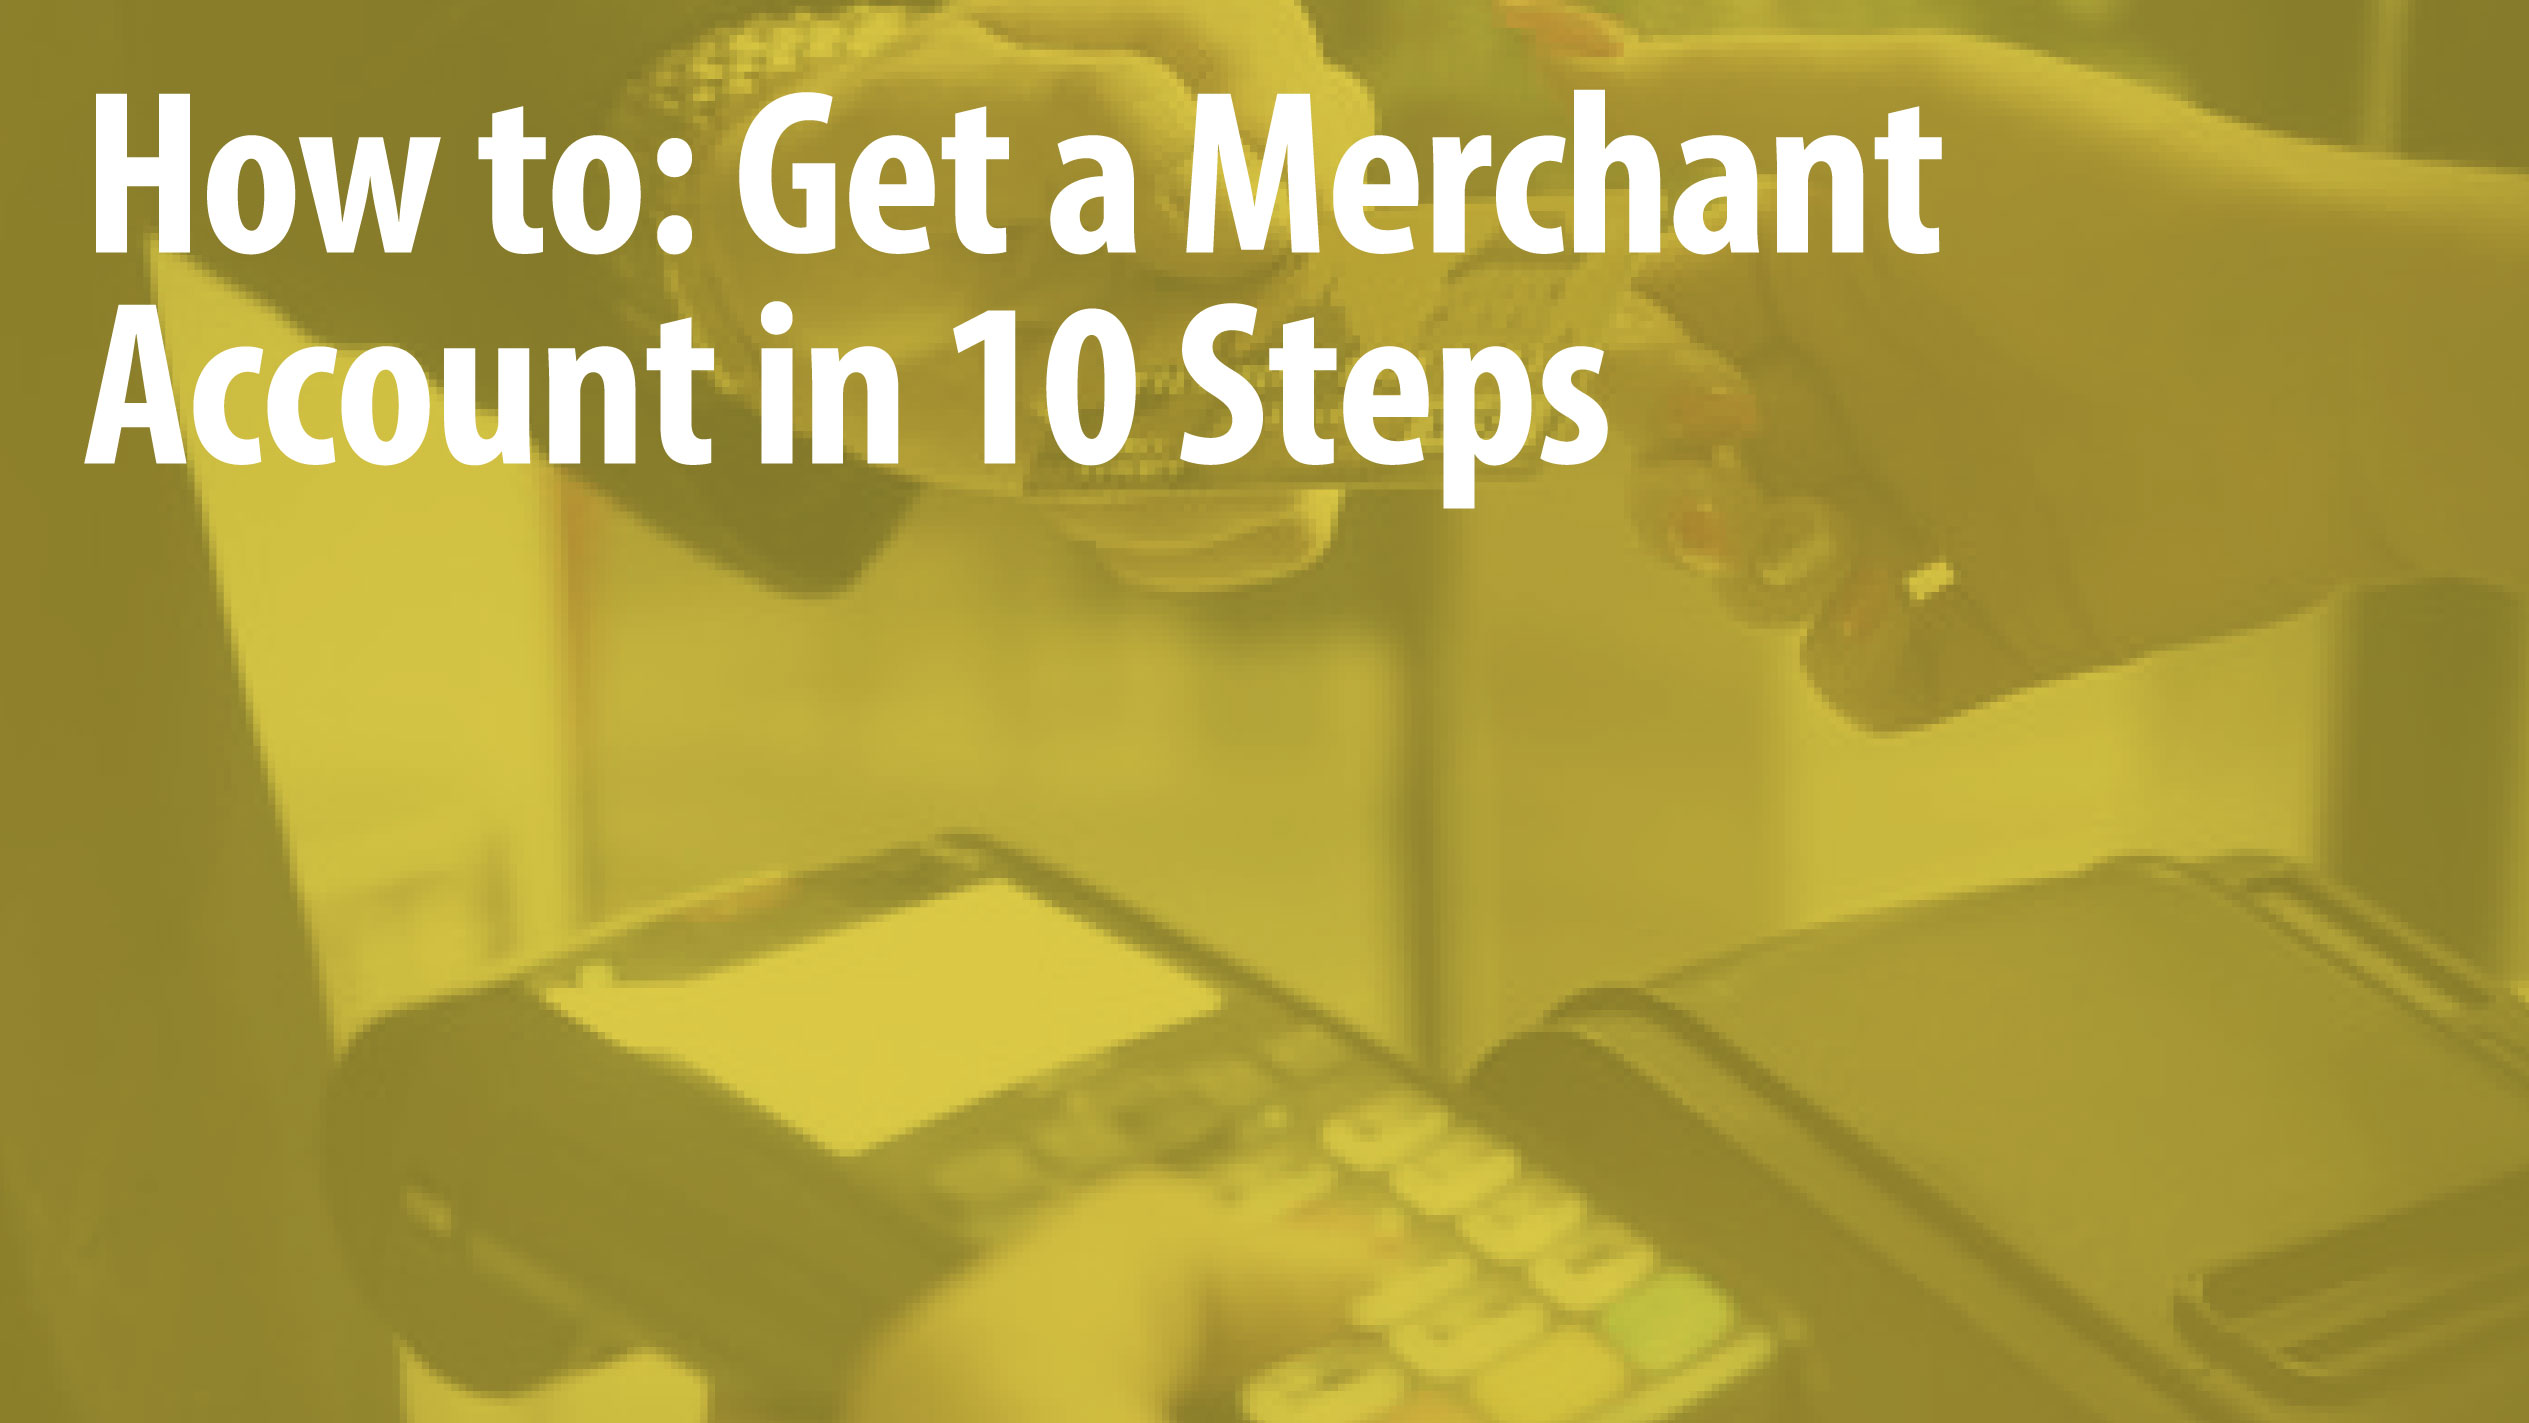 How to: Get a Merchant Account in 10 Steps